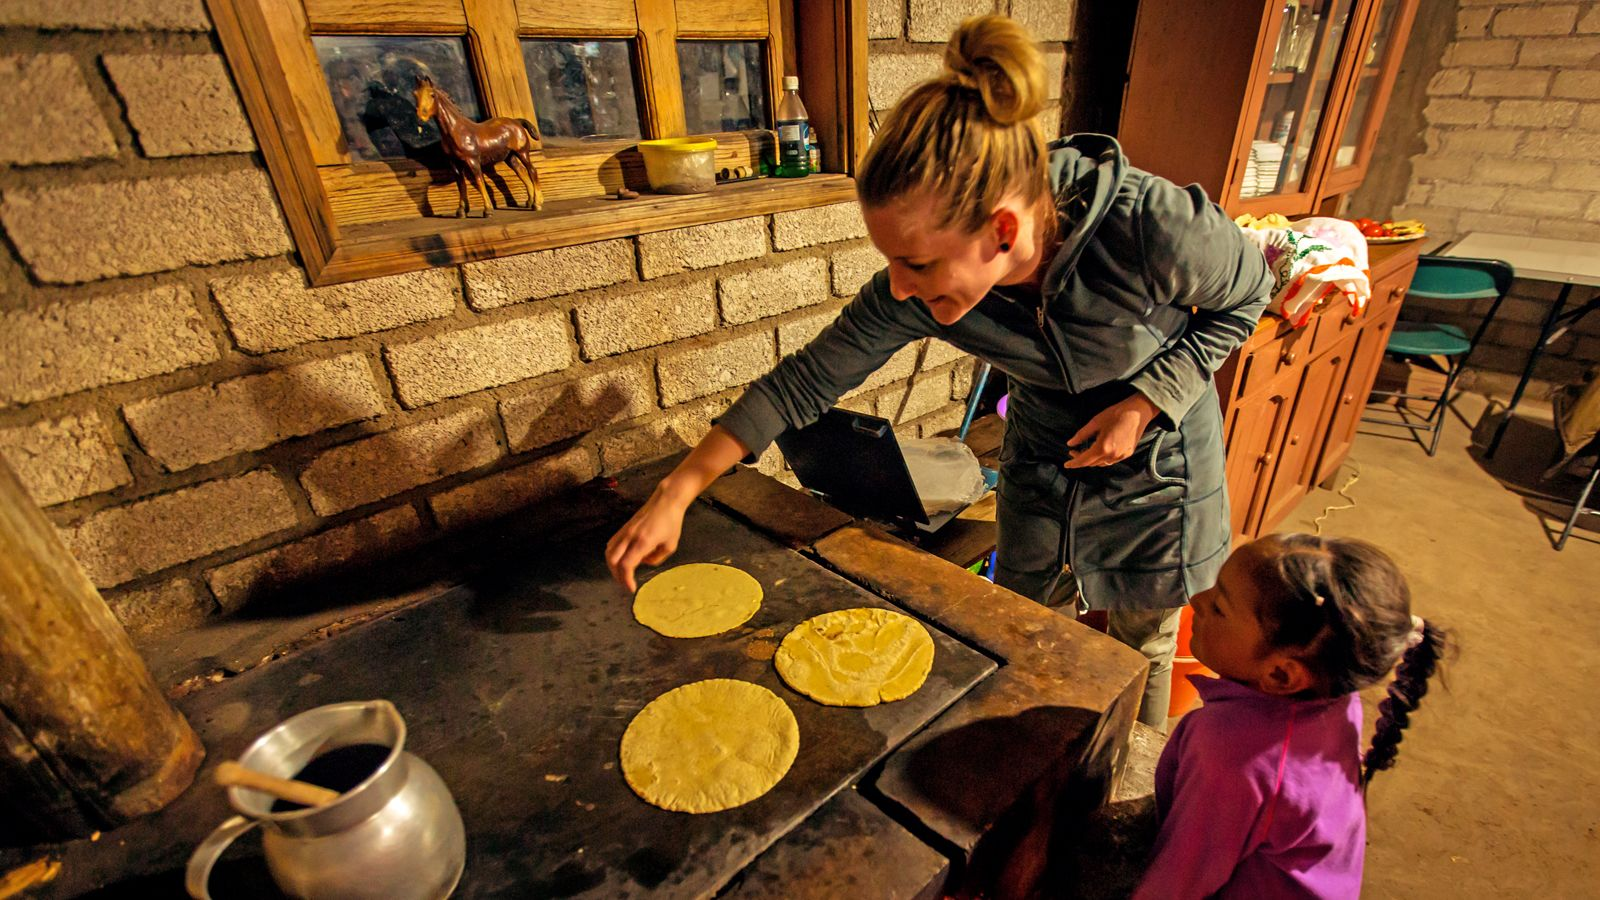 making tortillas inside a home in Mexico